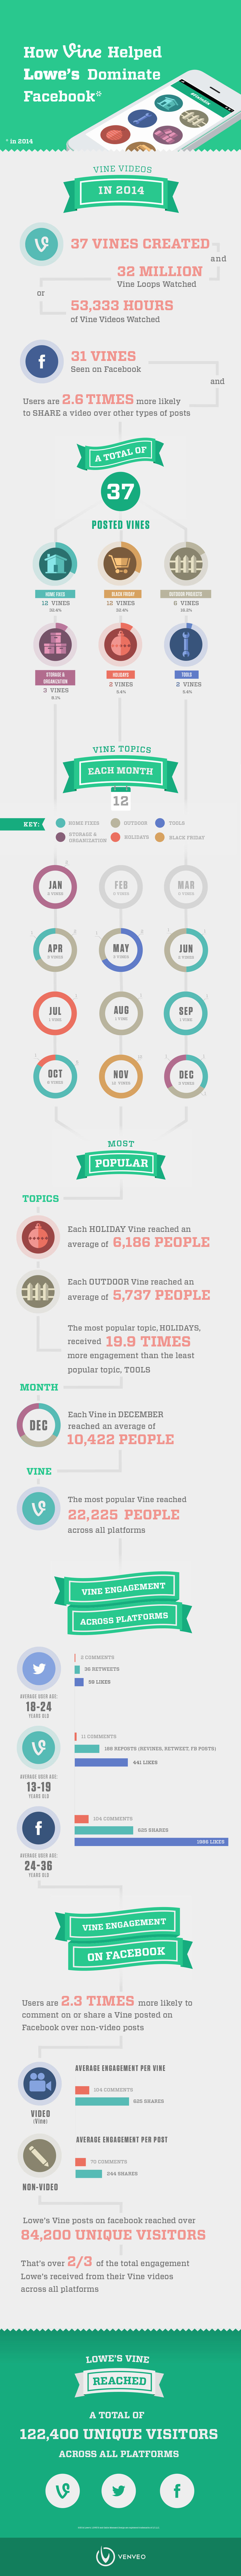 Lowes Social Media Infographic